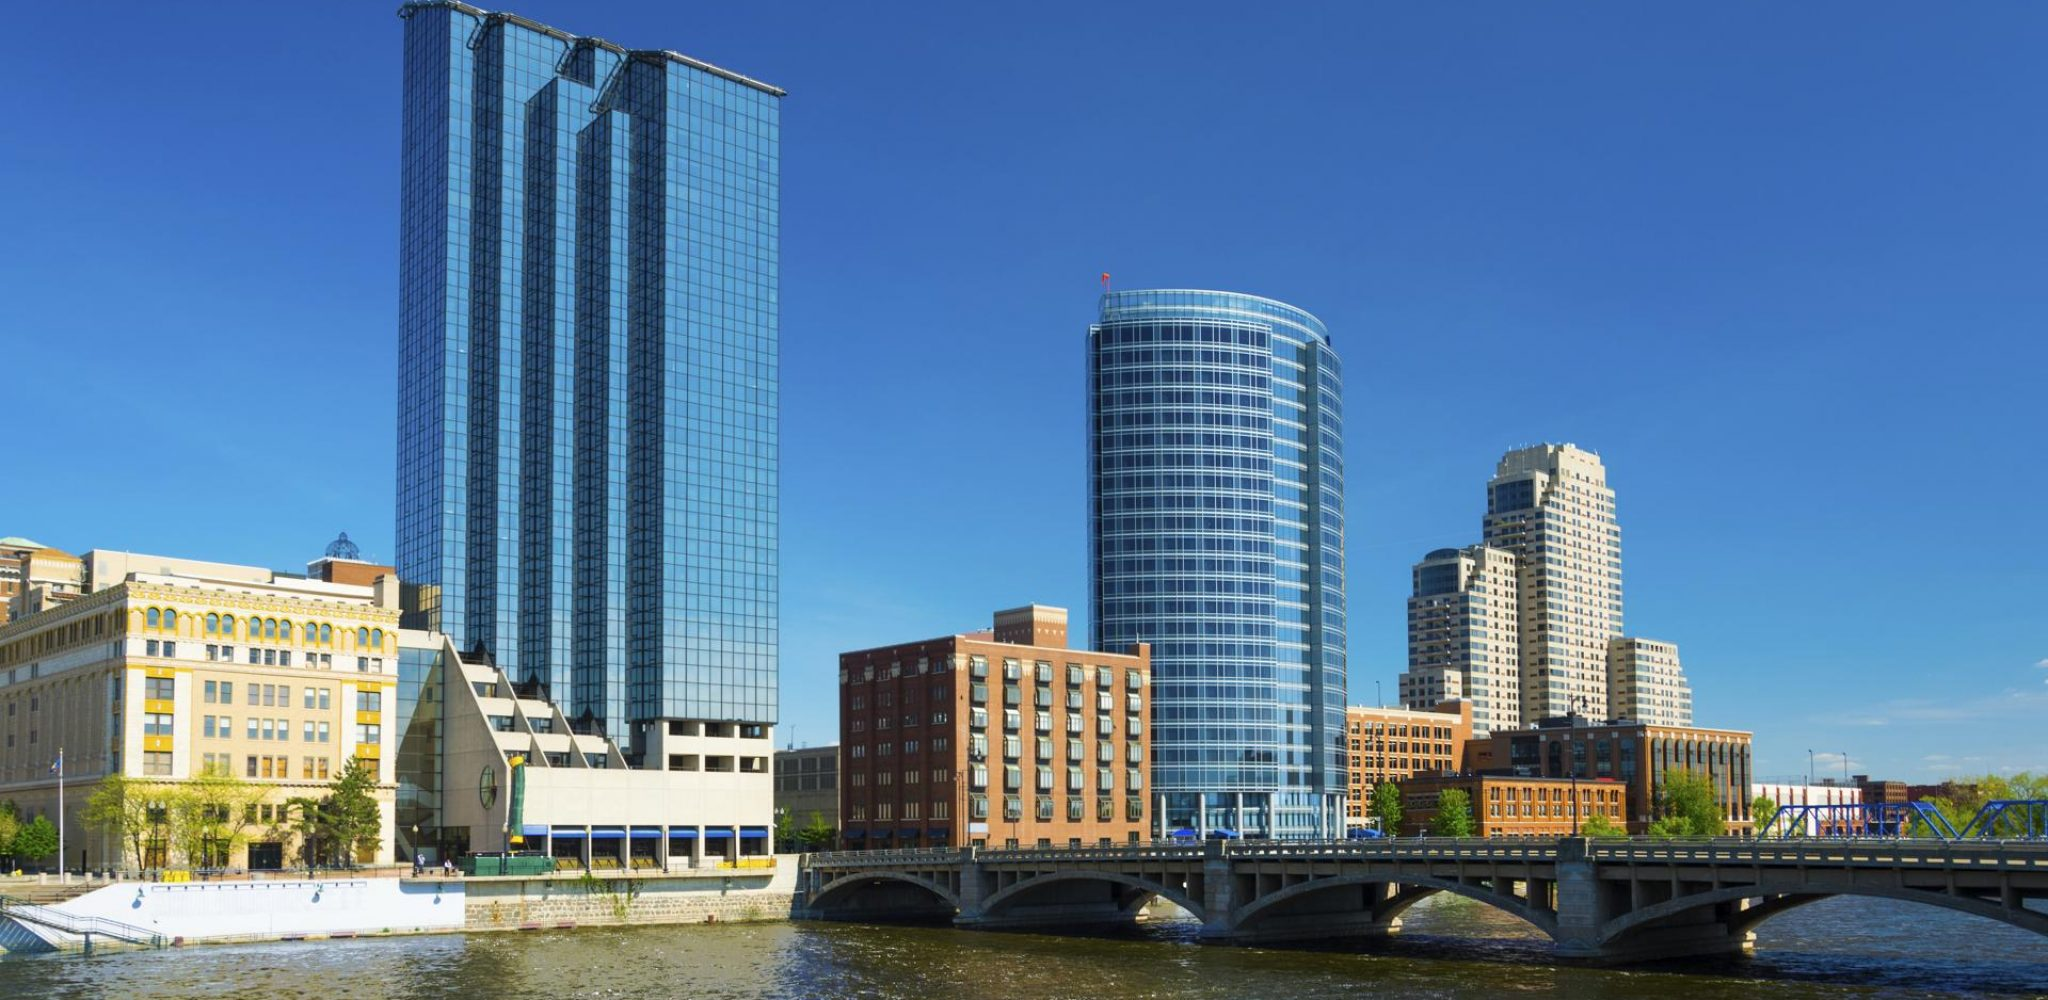 Grand Rapids downtown skyline with Grand River in the foreground.